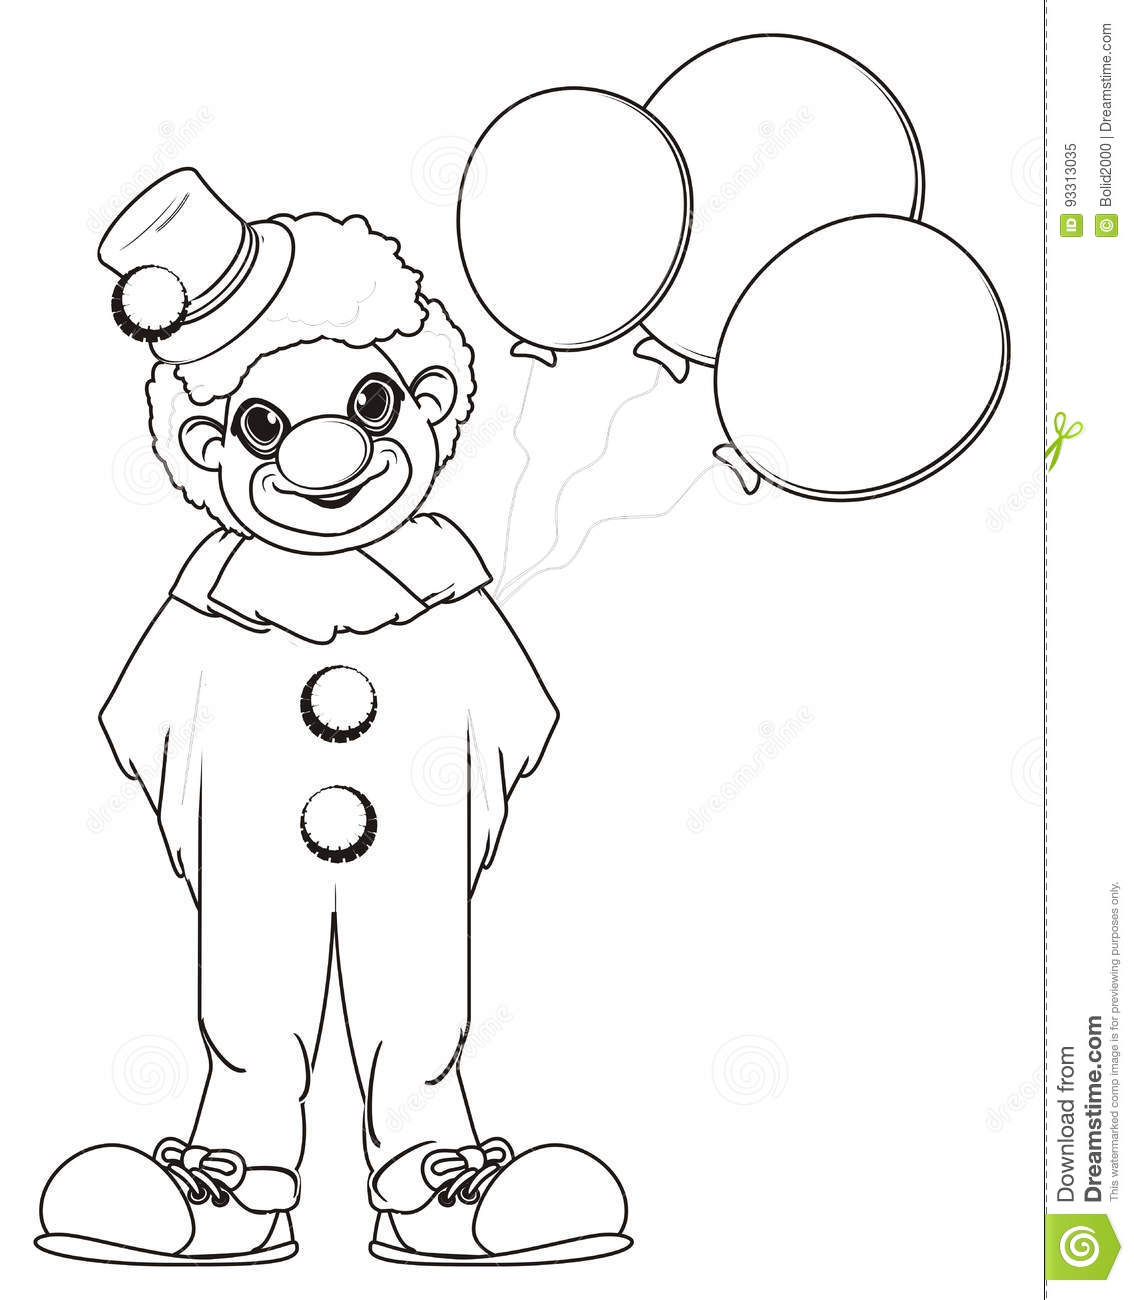 Coloring Clown With Balloons Stock Illustration - Illustration of ...